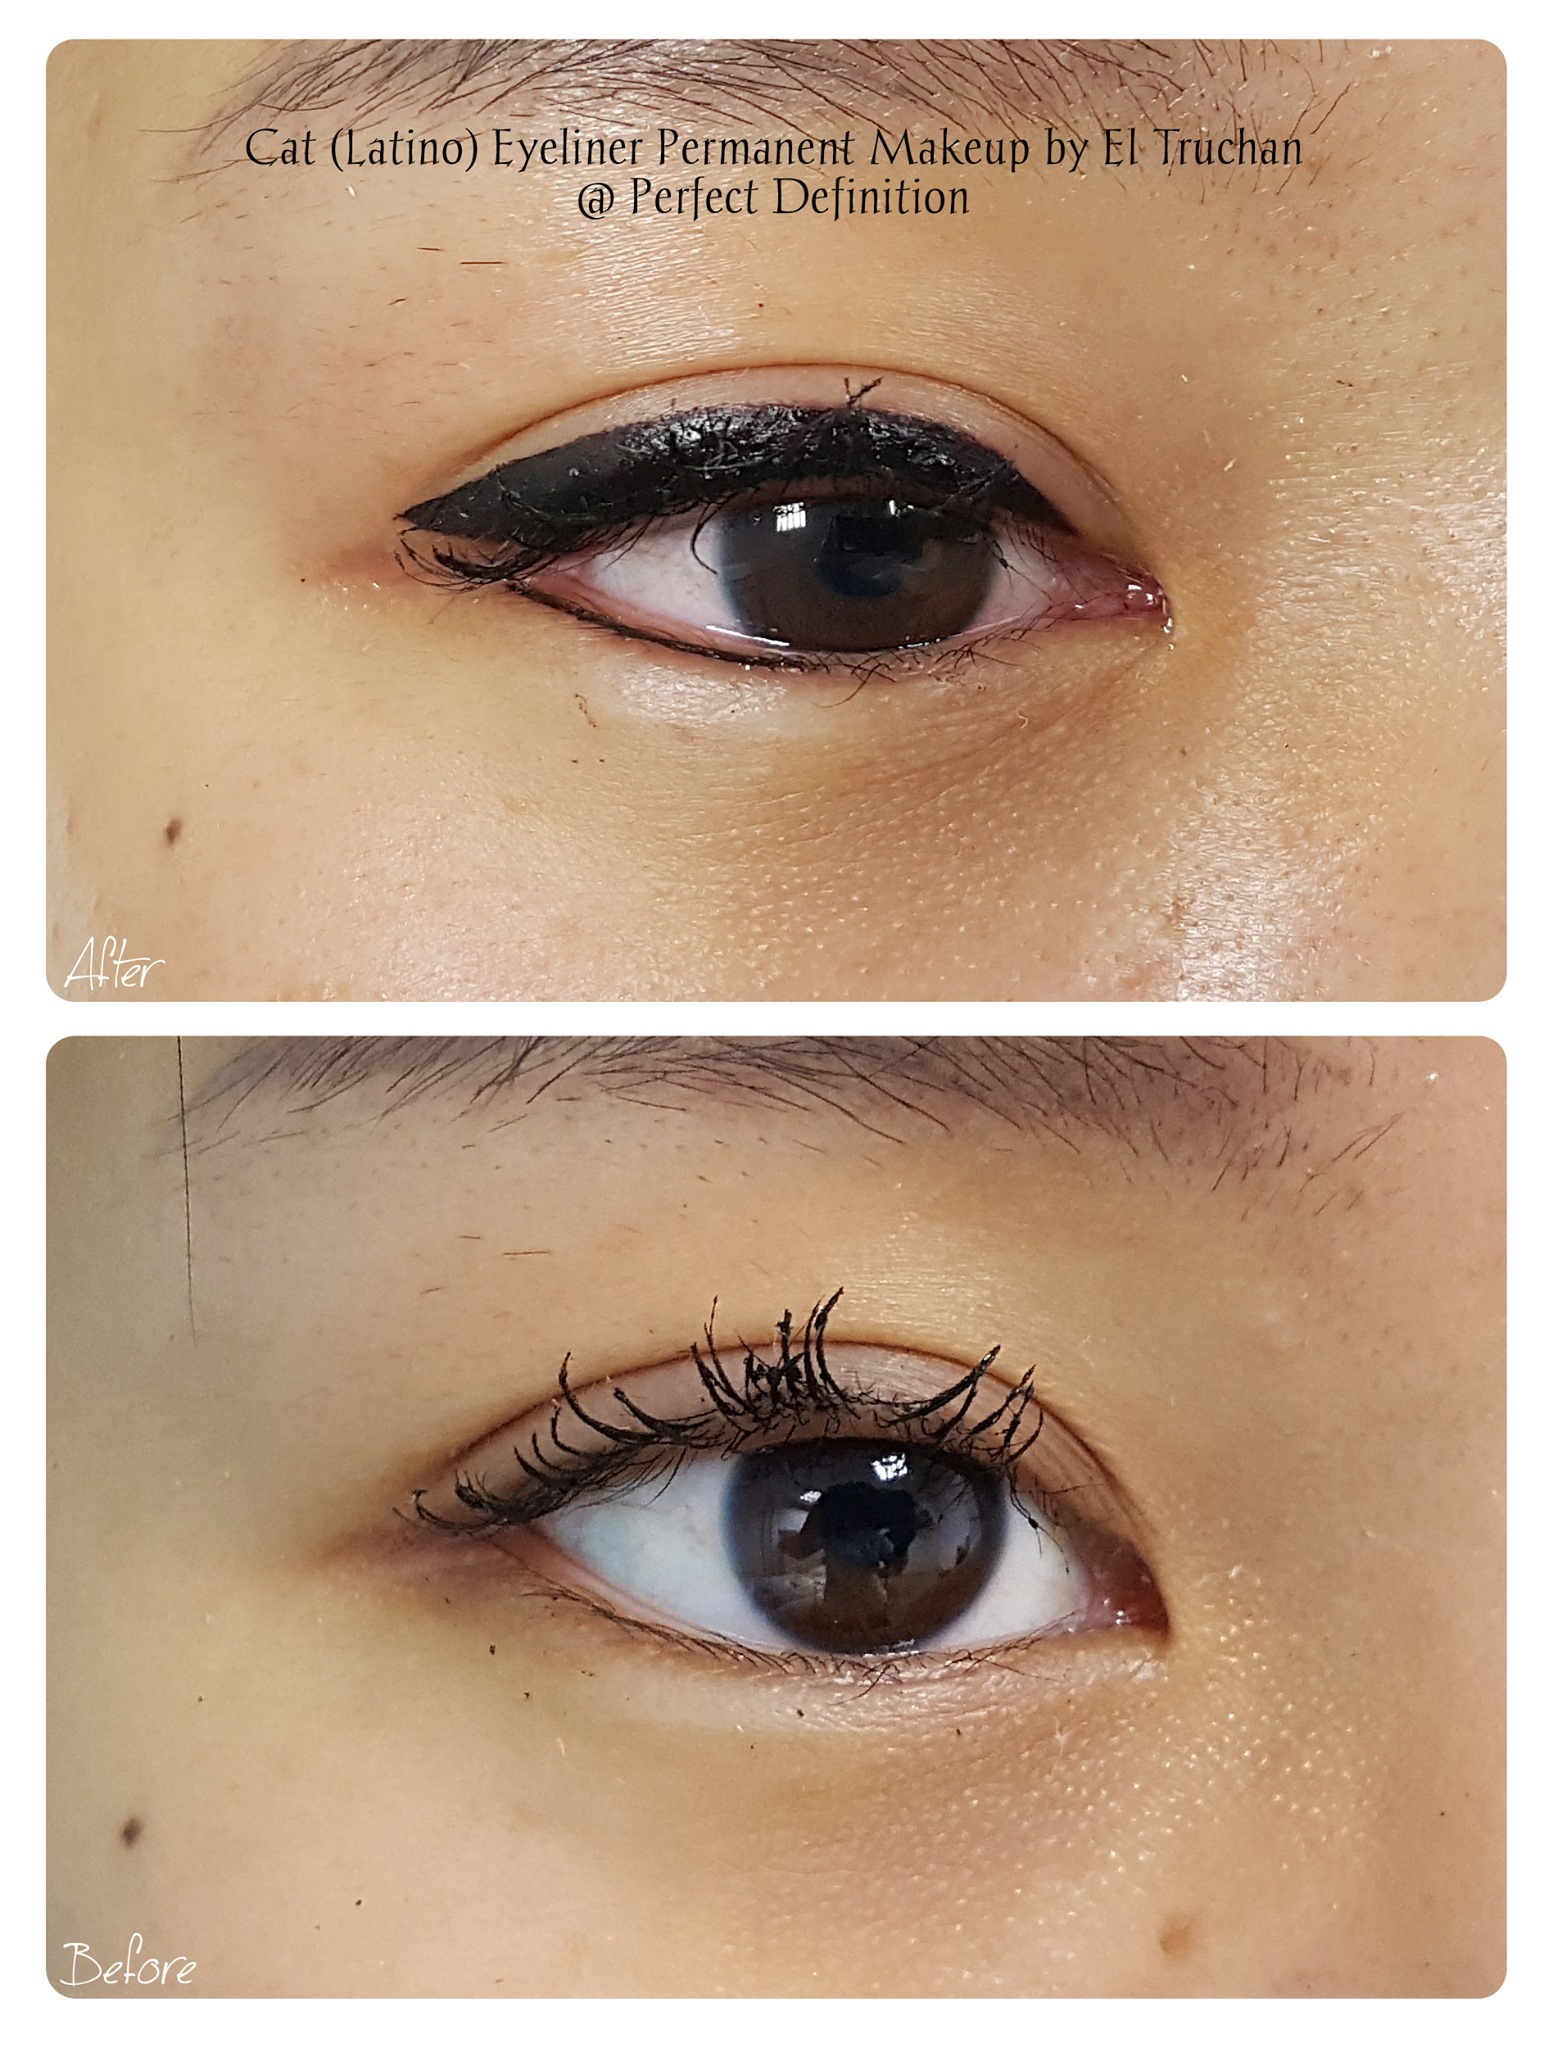 Cat (Latino) Eyeliner Permanent Makeup b